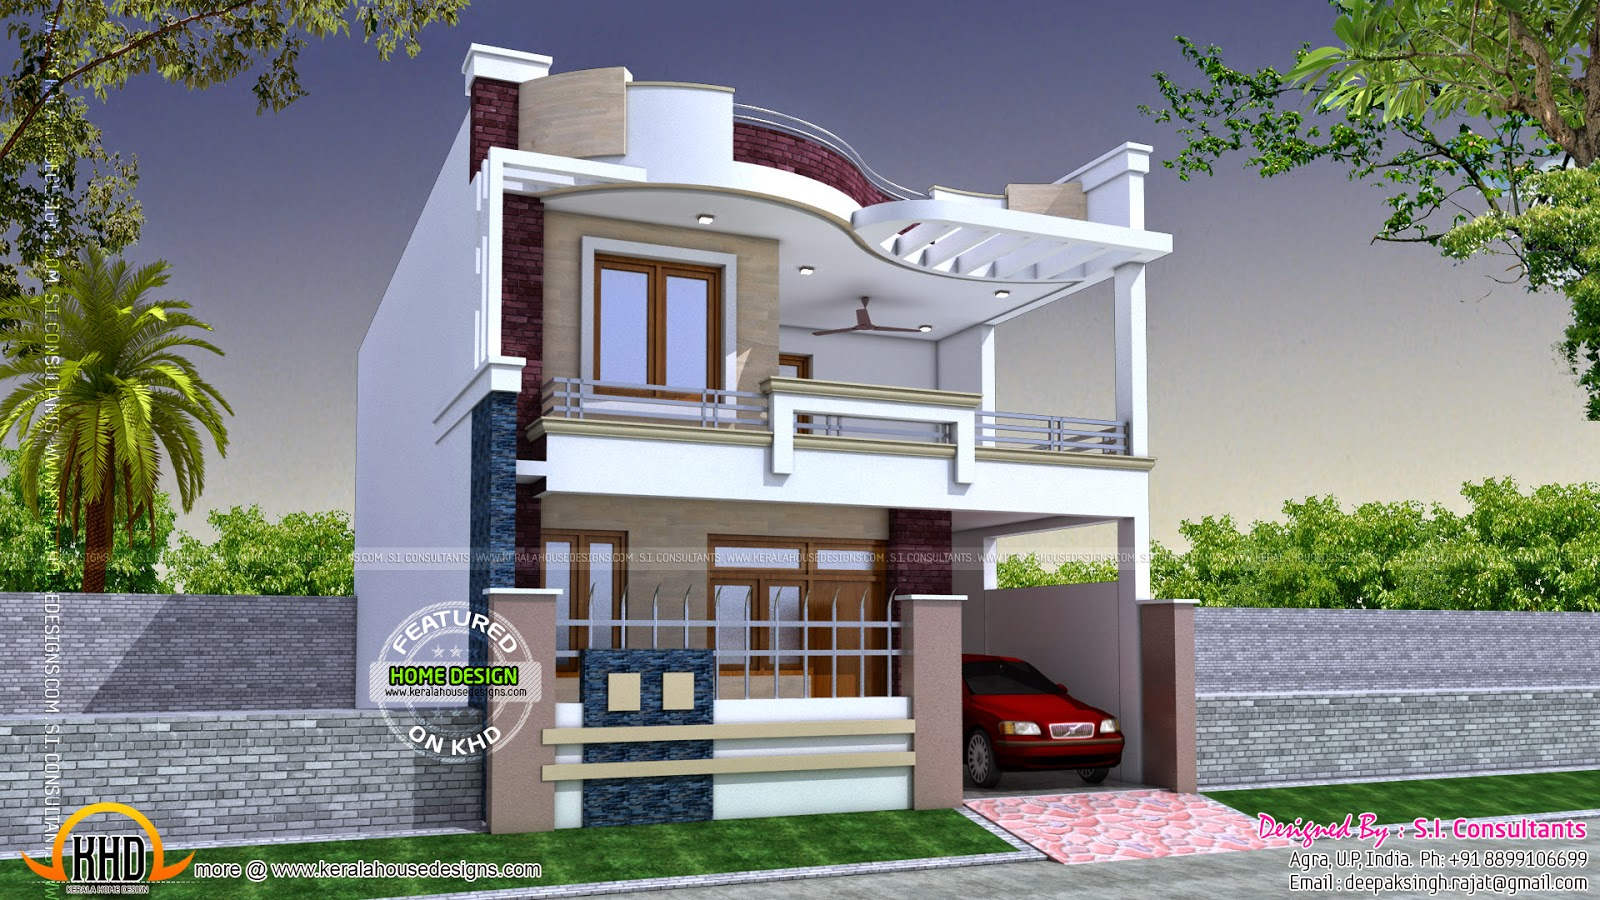 Modern Indian Home Design Kerala Home Design And Floor Plans: home design sites